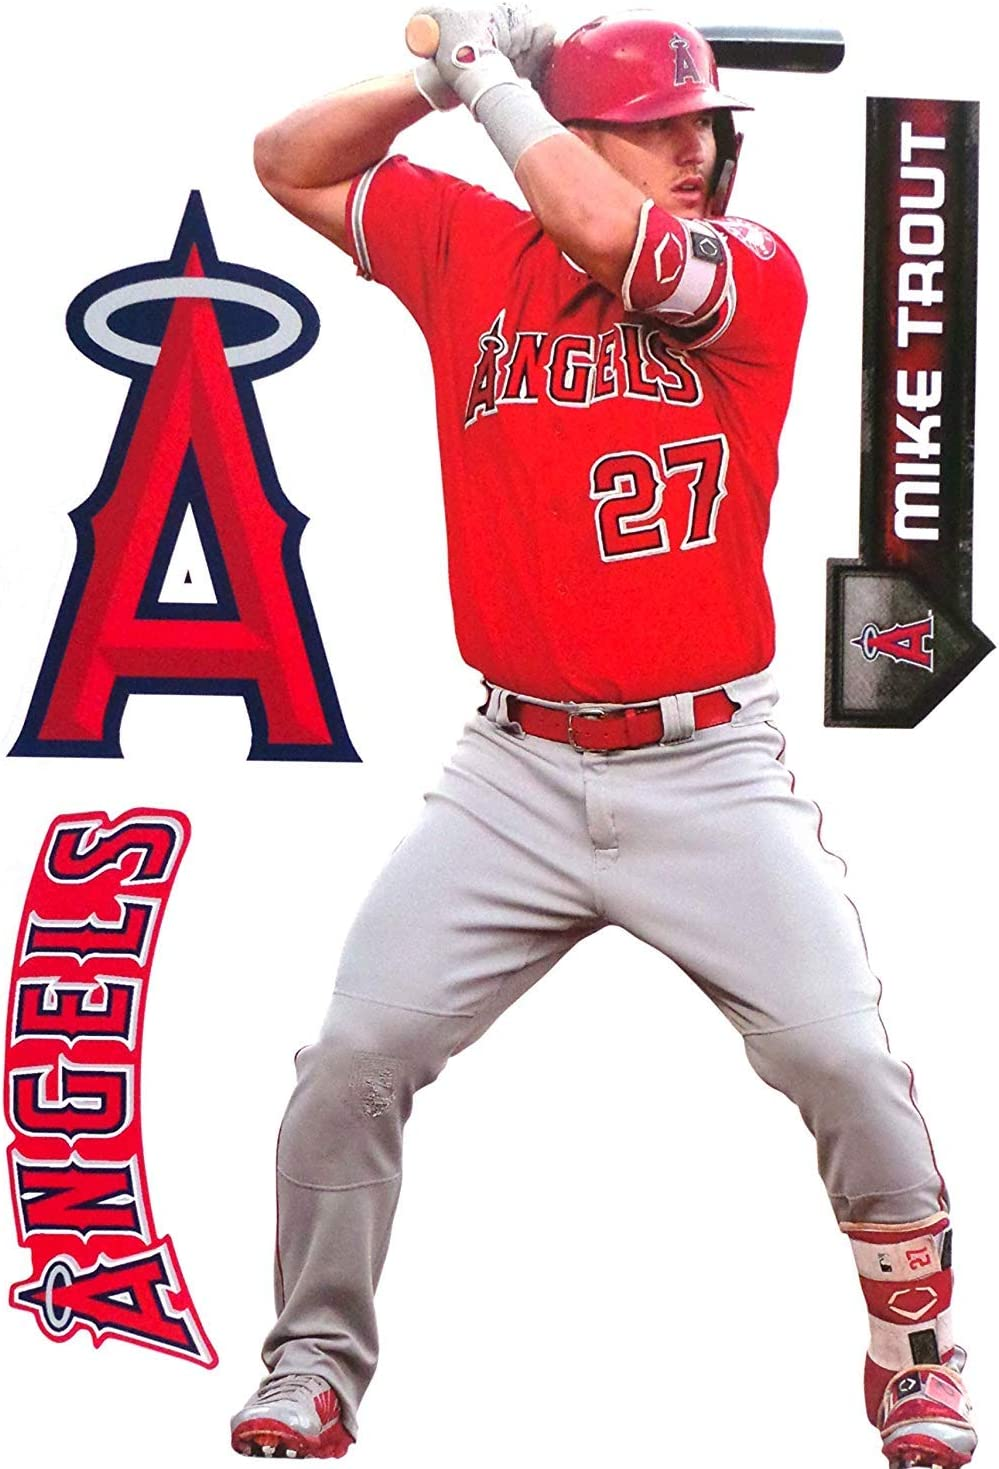 Mike Trout Angels Mvp Ad Panel 4 X 6 Fathead Mlb Wall Graphics Vinyl Decal Ebay